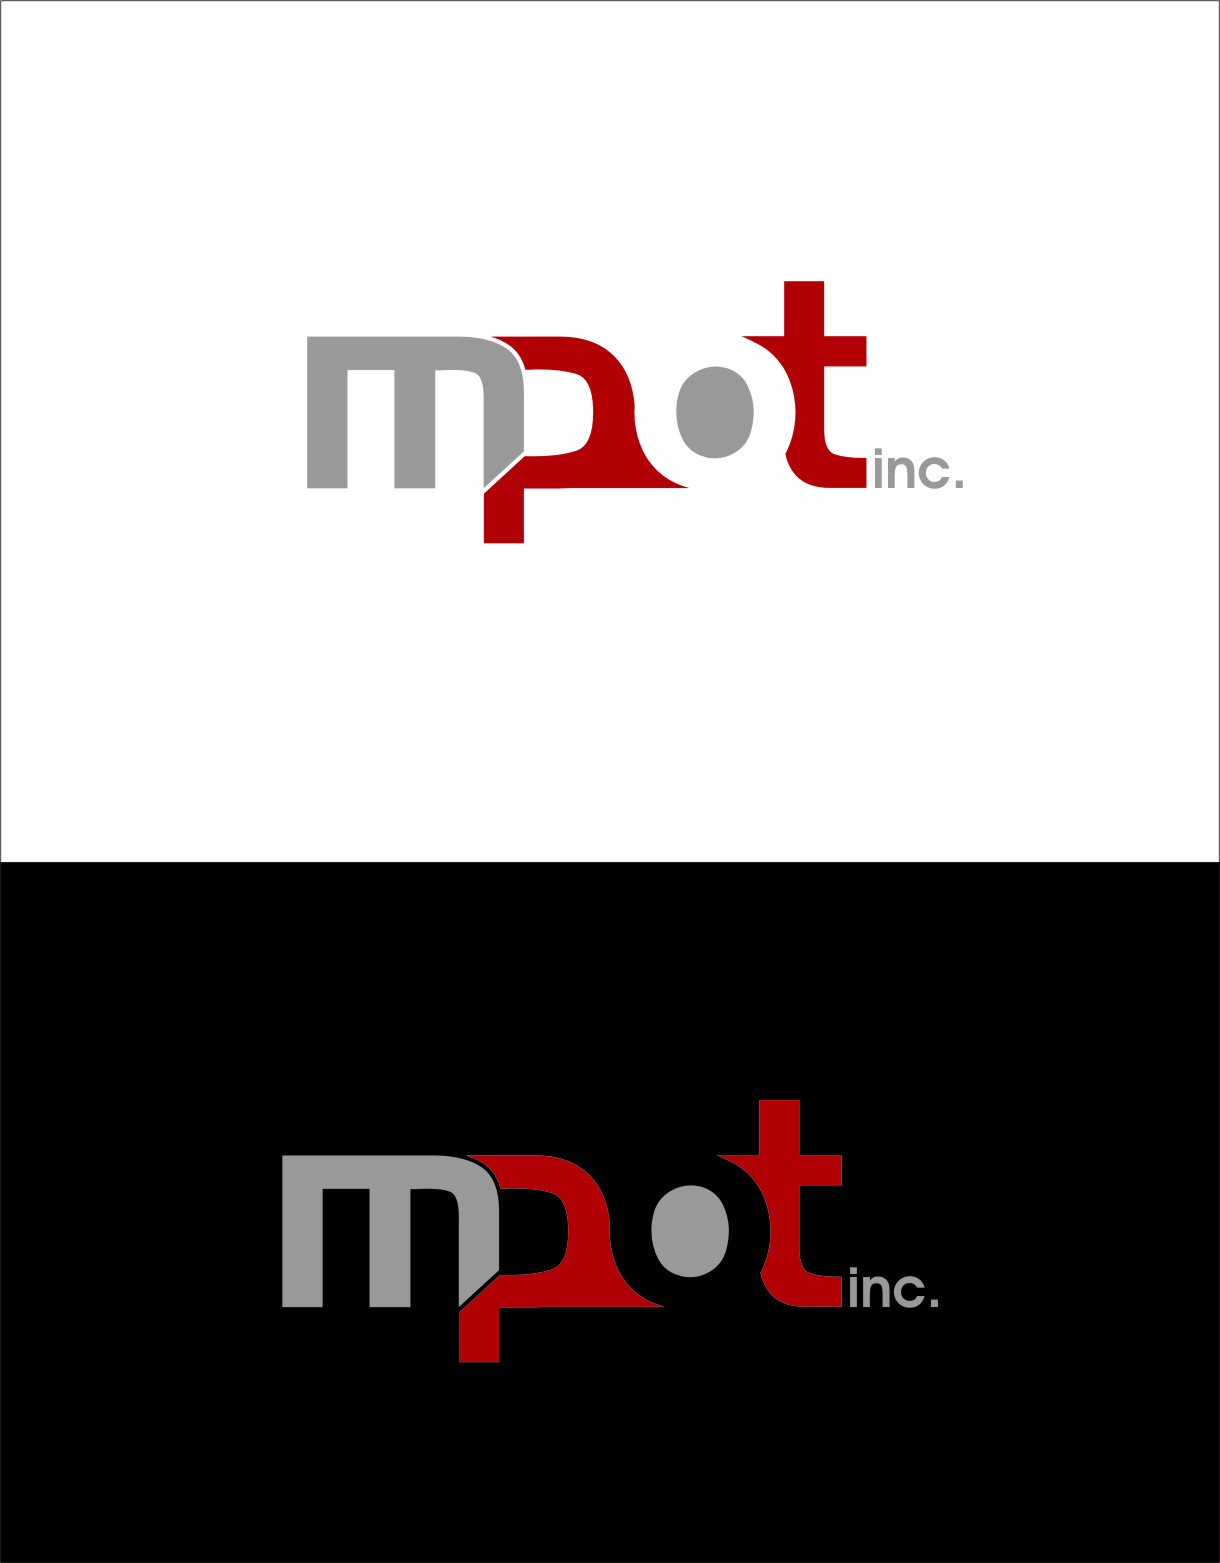 Logo Design by Ngepet_art - Entry No. 28 in the Logo Design Contest Mpot inc  Logo Design.